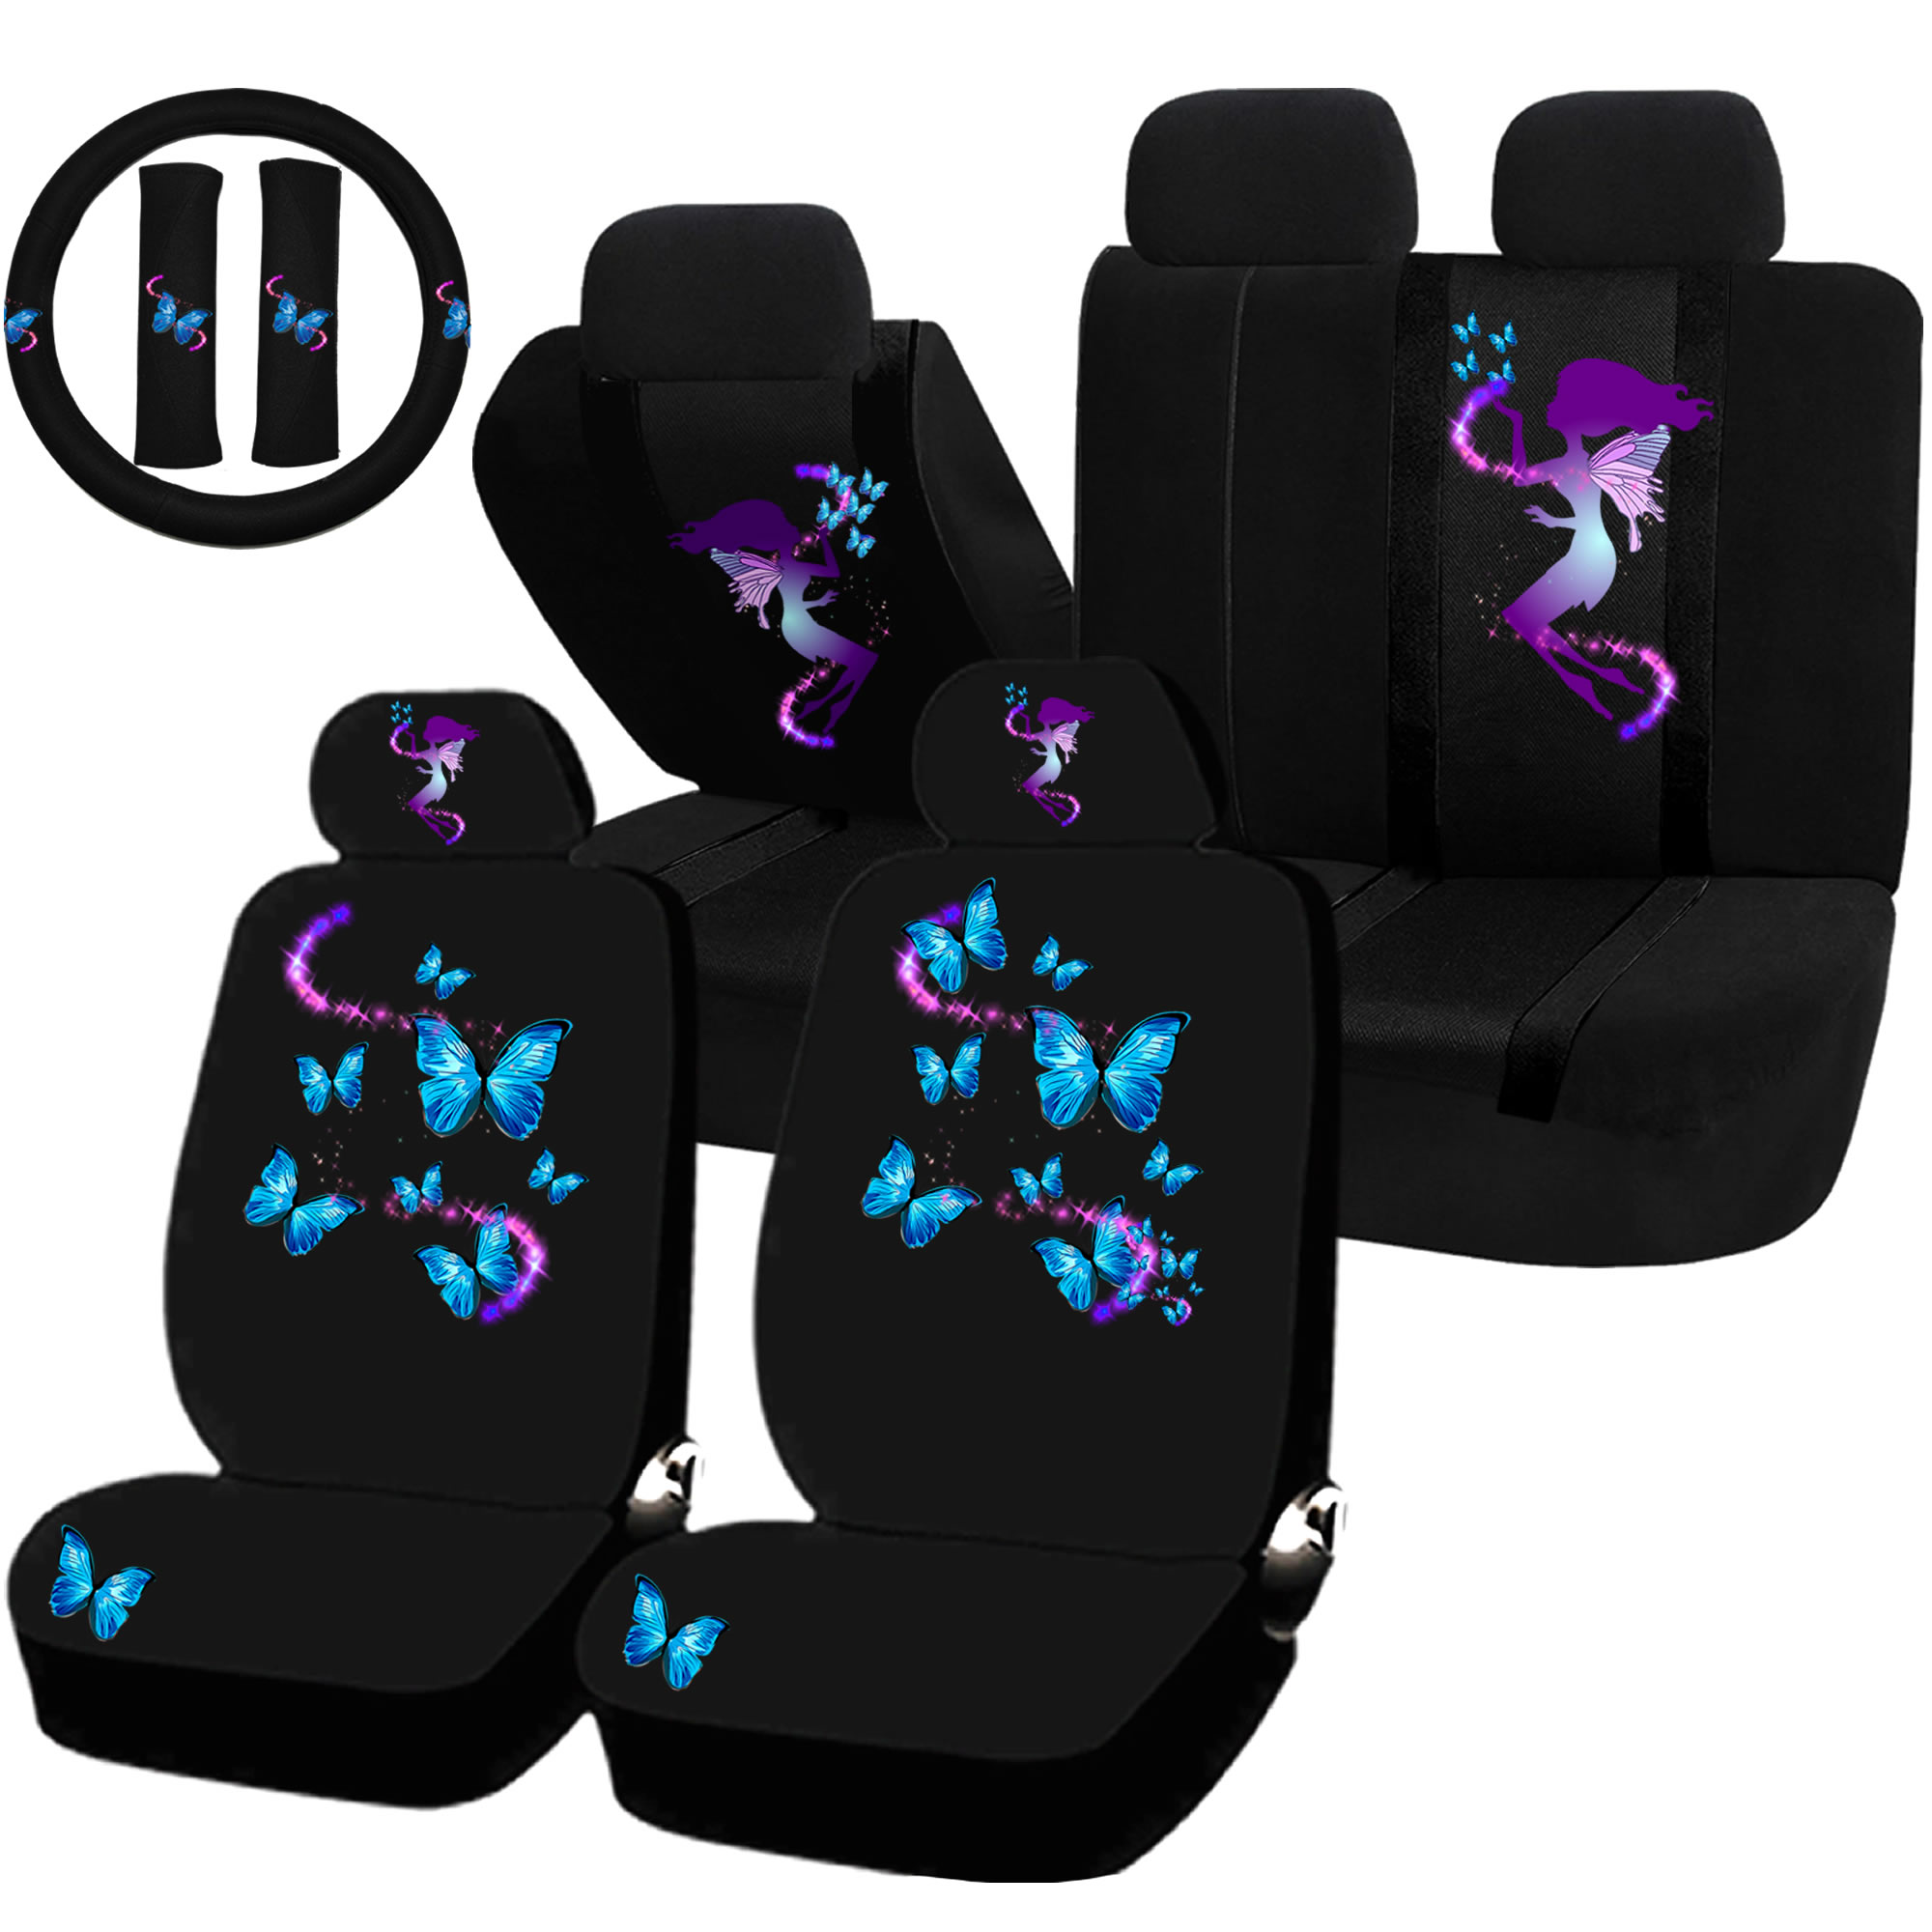 22PC Fairy Butterfly Magical Blue Purple Seat Covers & Steering Wheel Set Universal Car Truck SUV